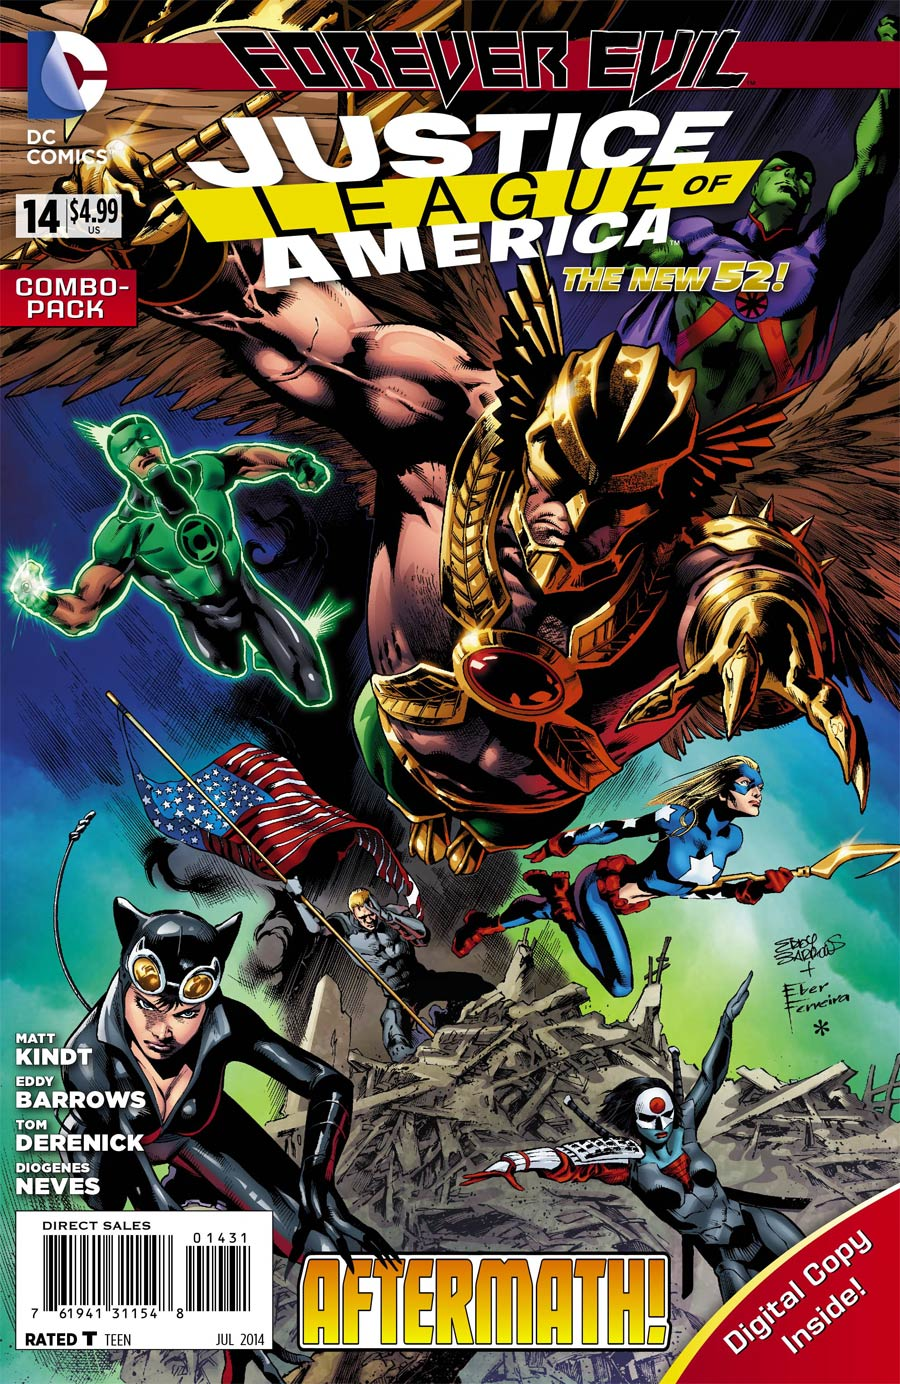 Justice League Of America Vol 3 #14 Cover B Combo Pack With Polybag (Forever Evil Aftermath)